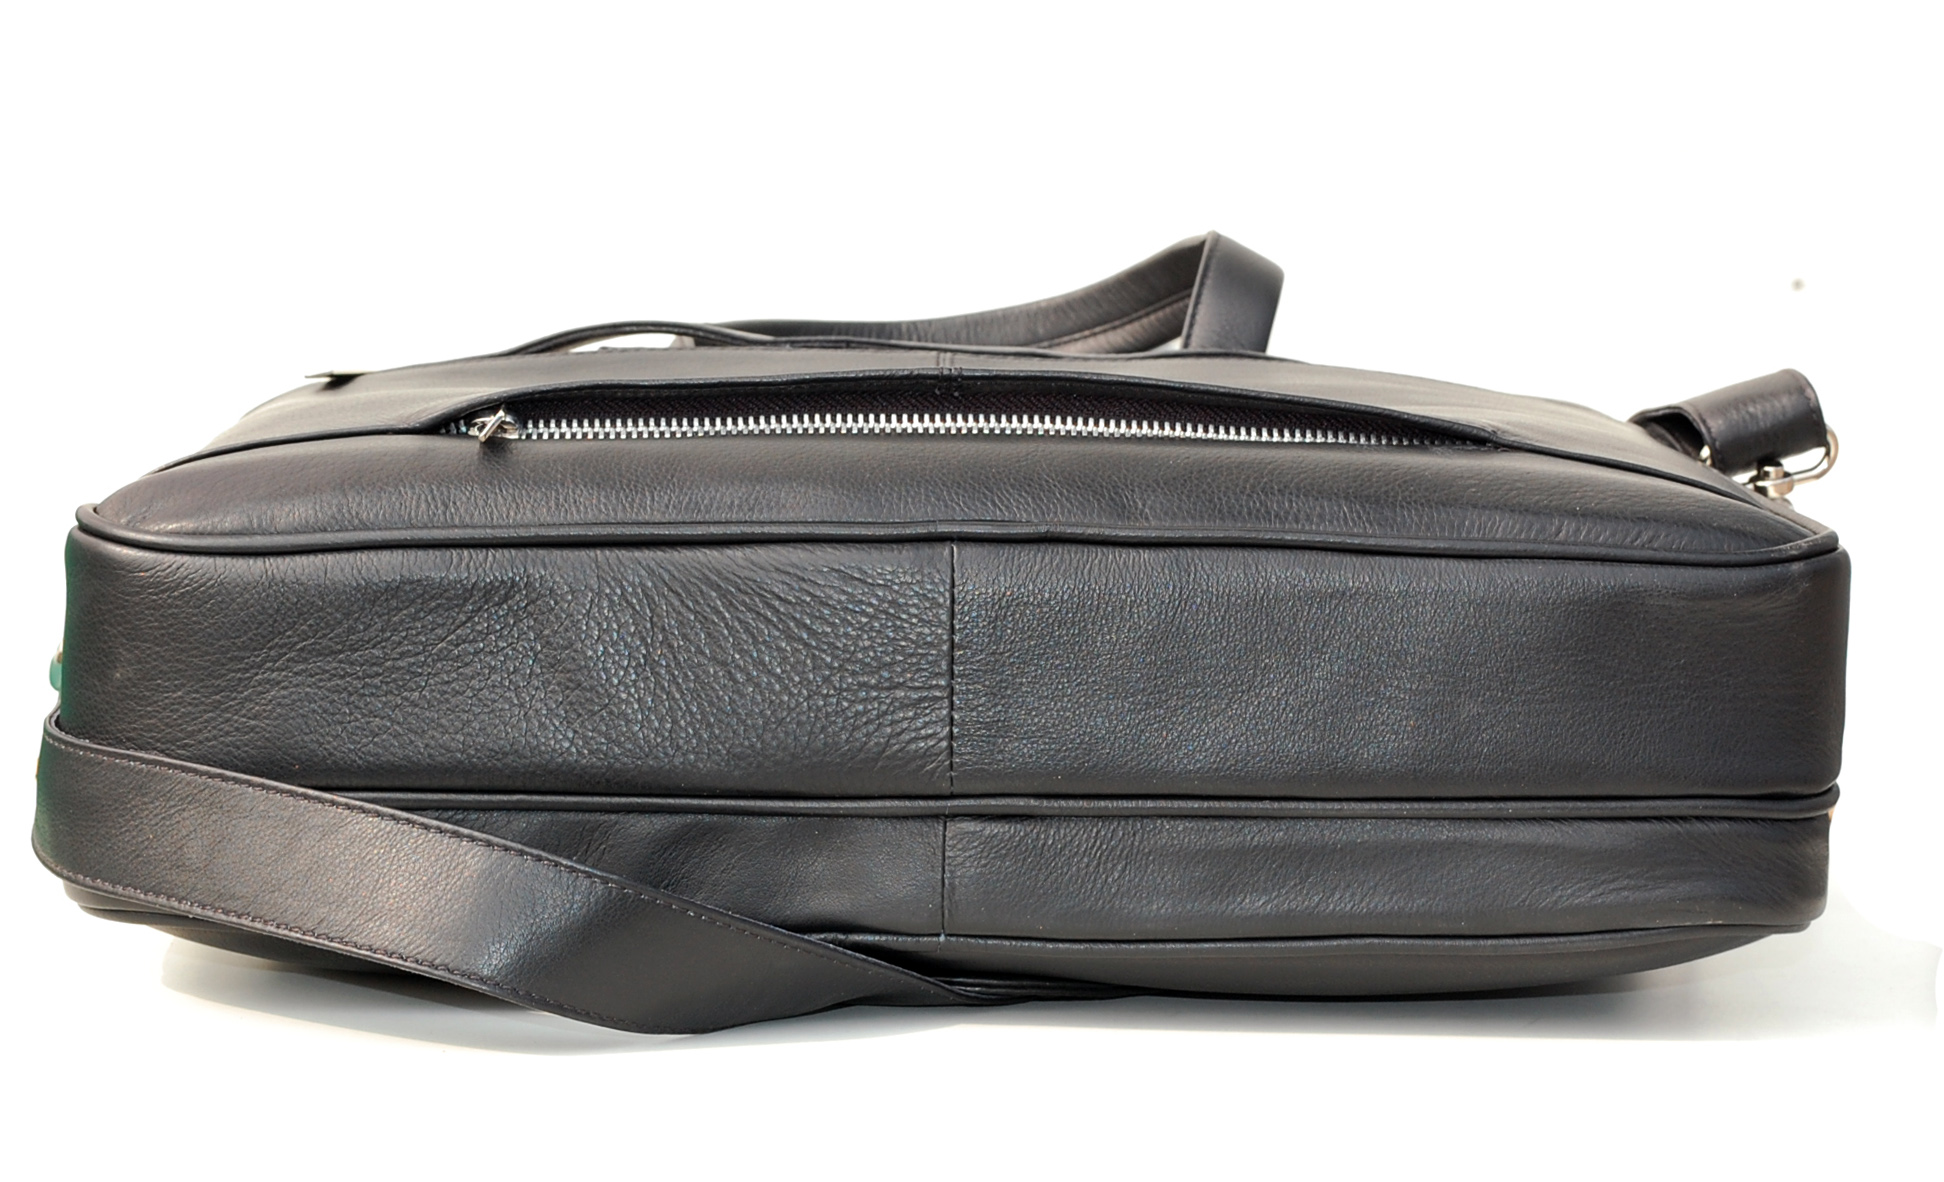 Leather Laptop / Travel Bag